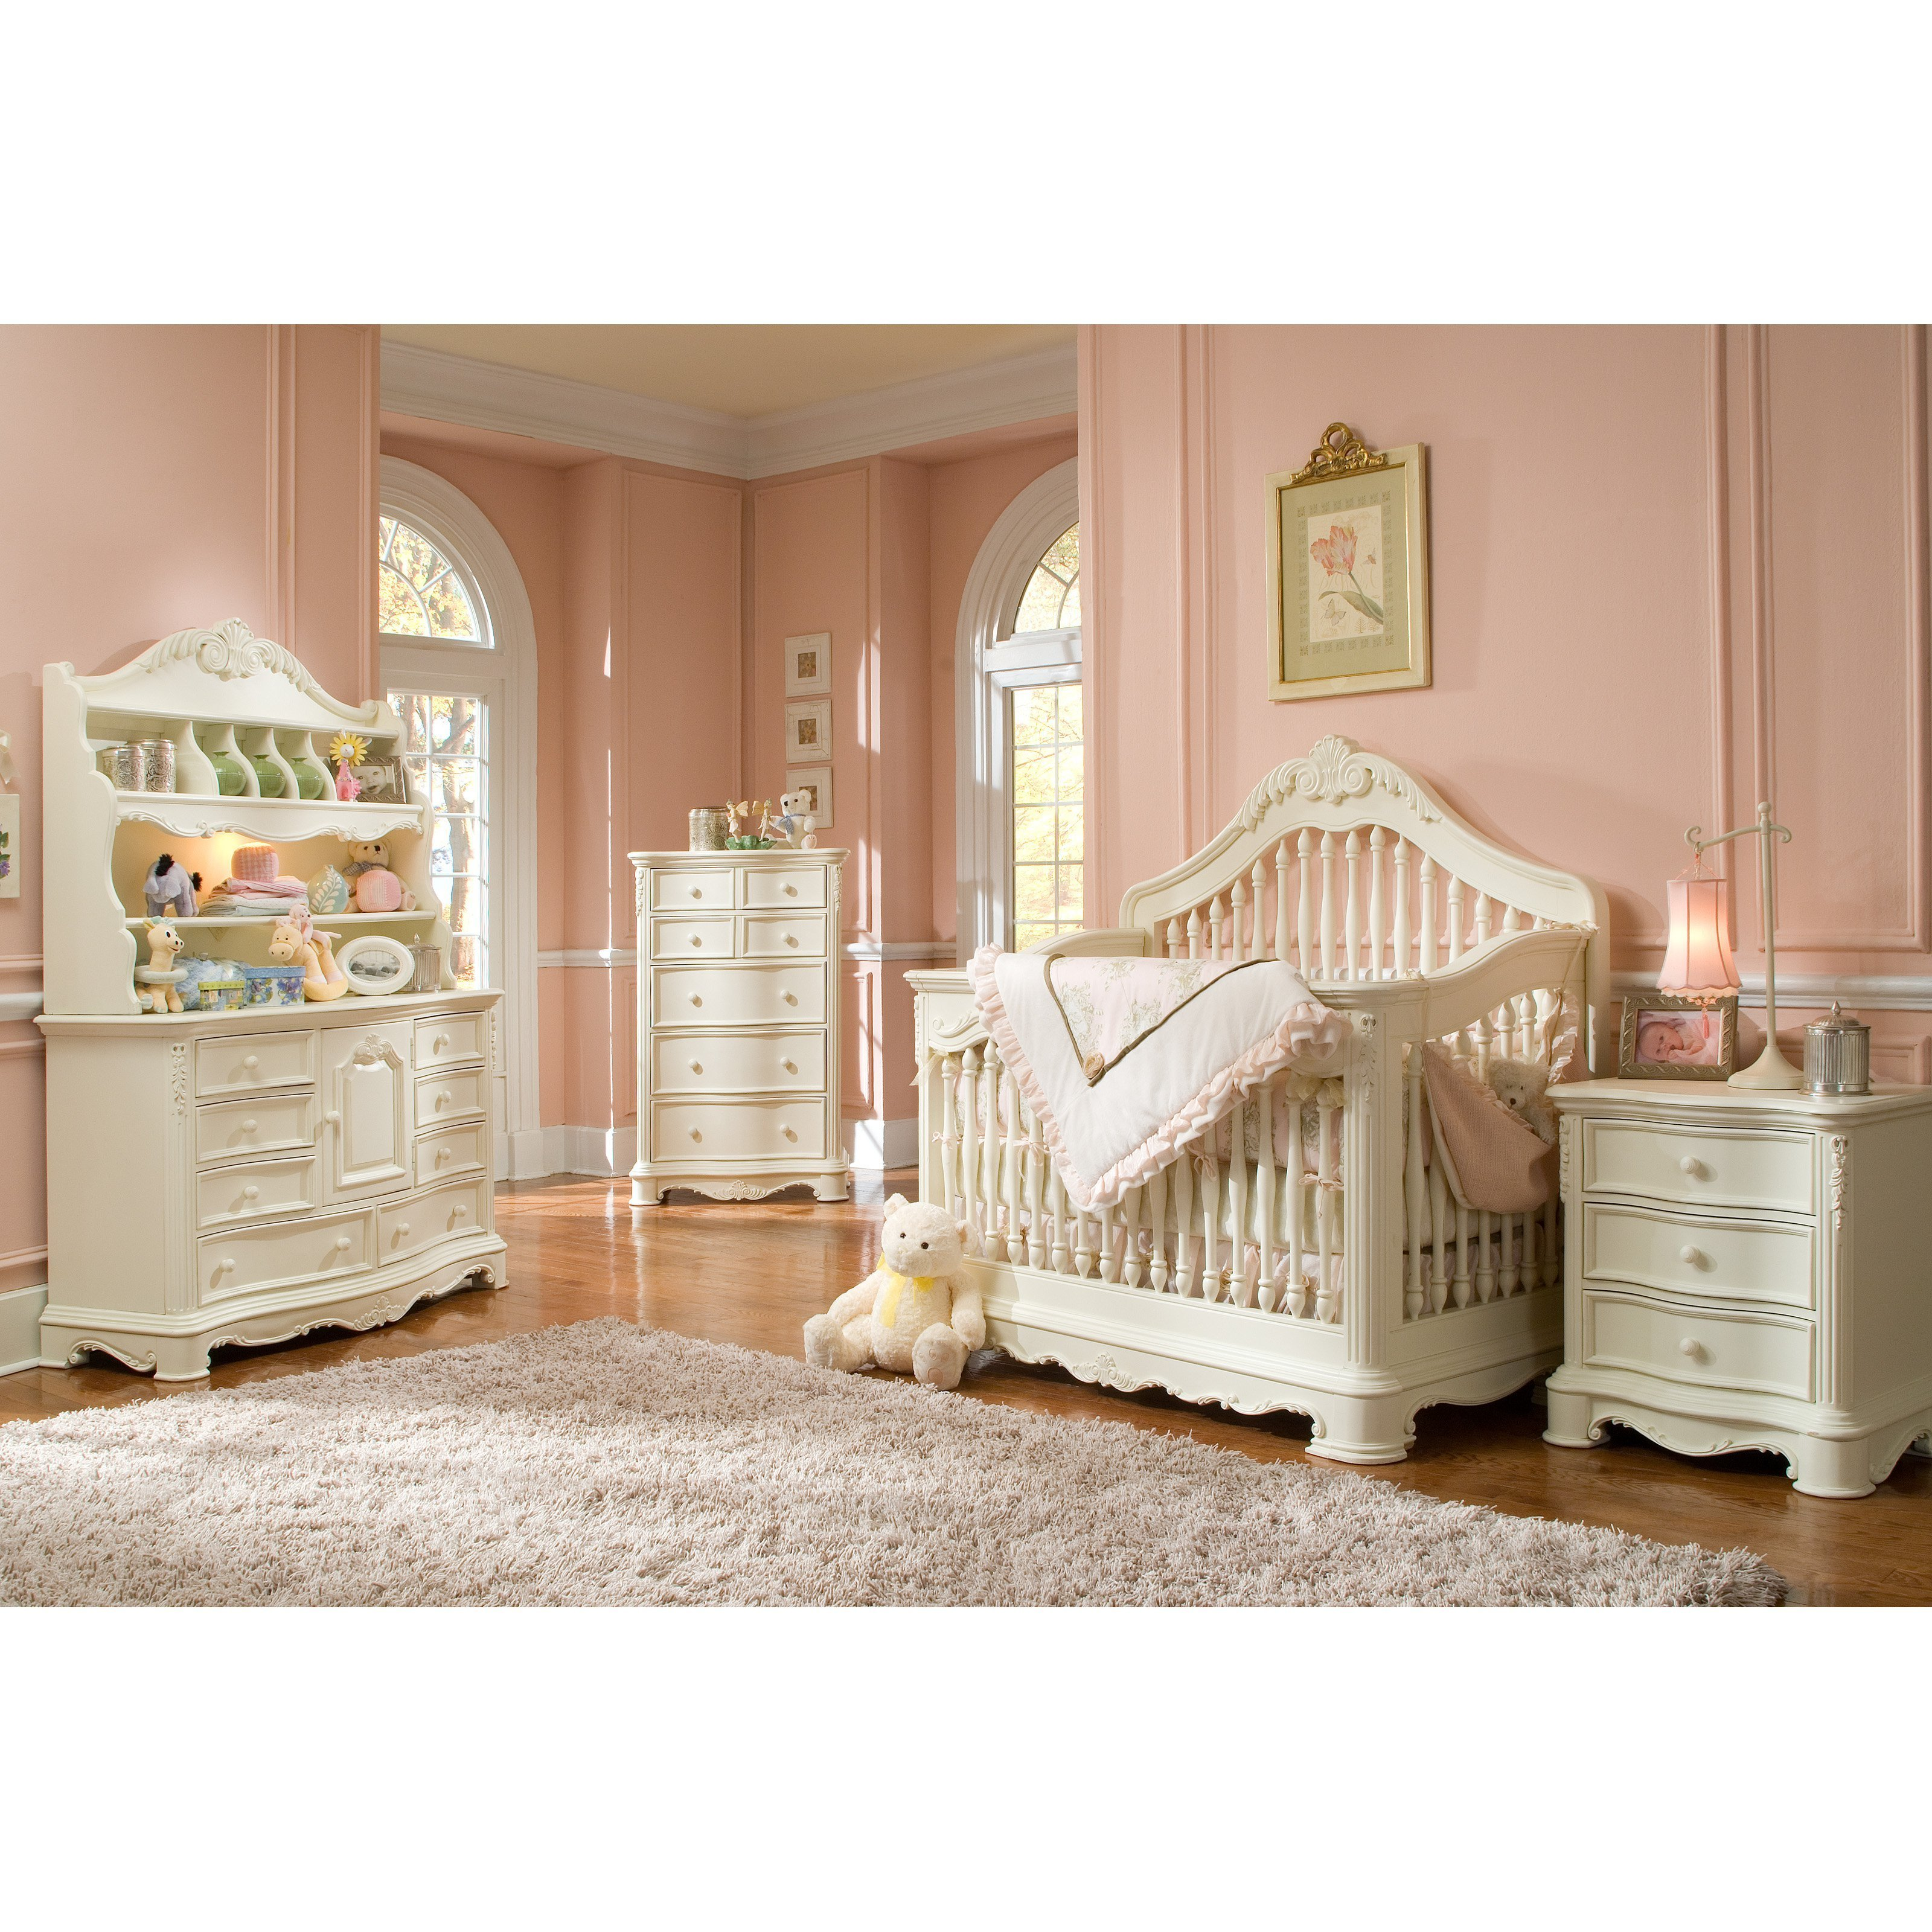 Best Creations Baby Venezia Crib Collection At Hayneedle With Pictures